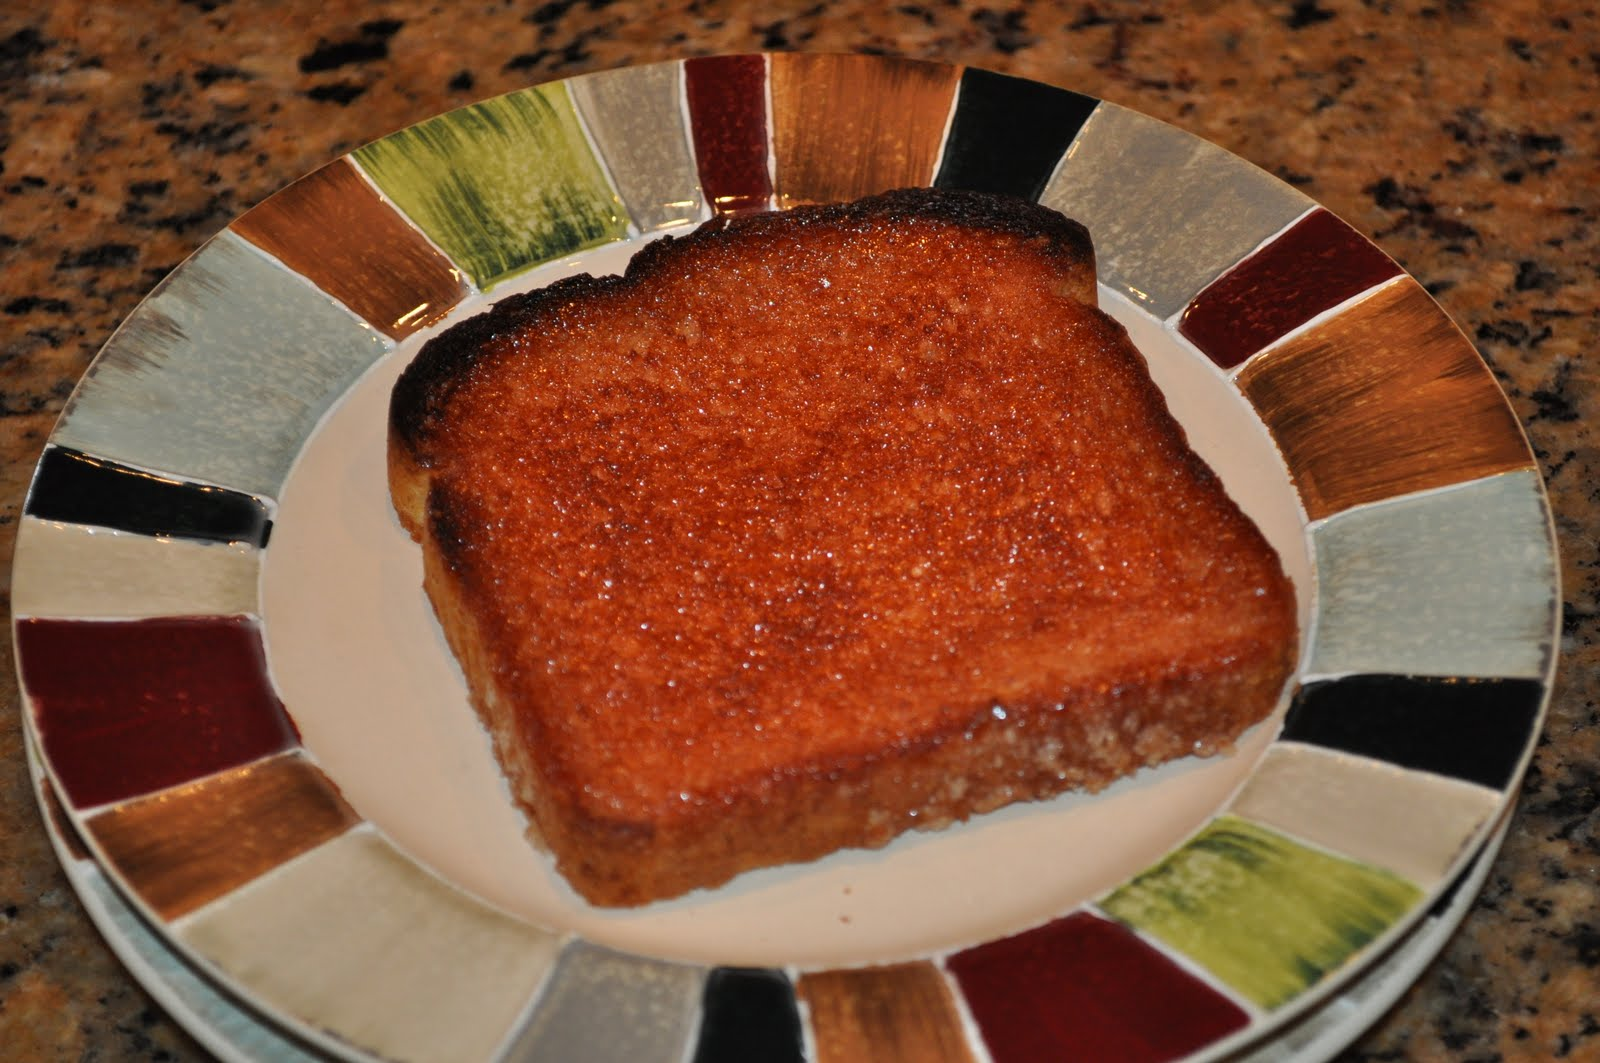 Beth's Favorite Recipes: Cinnamon Toast – The RIGHT Way